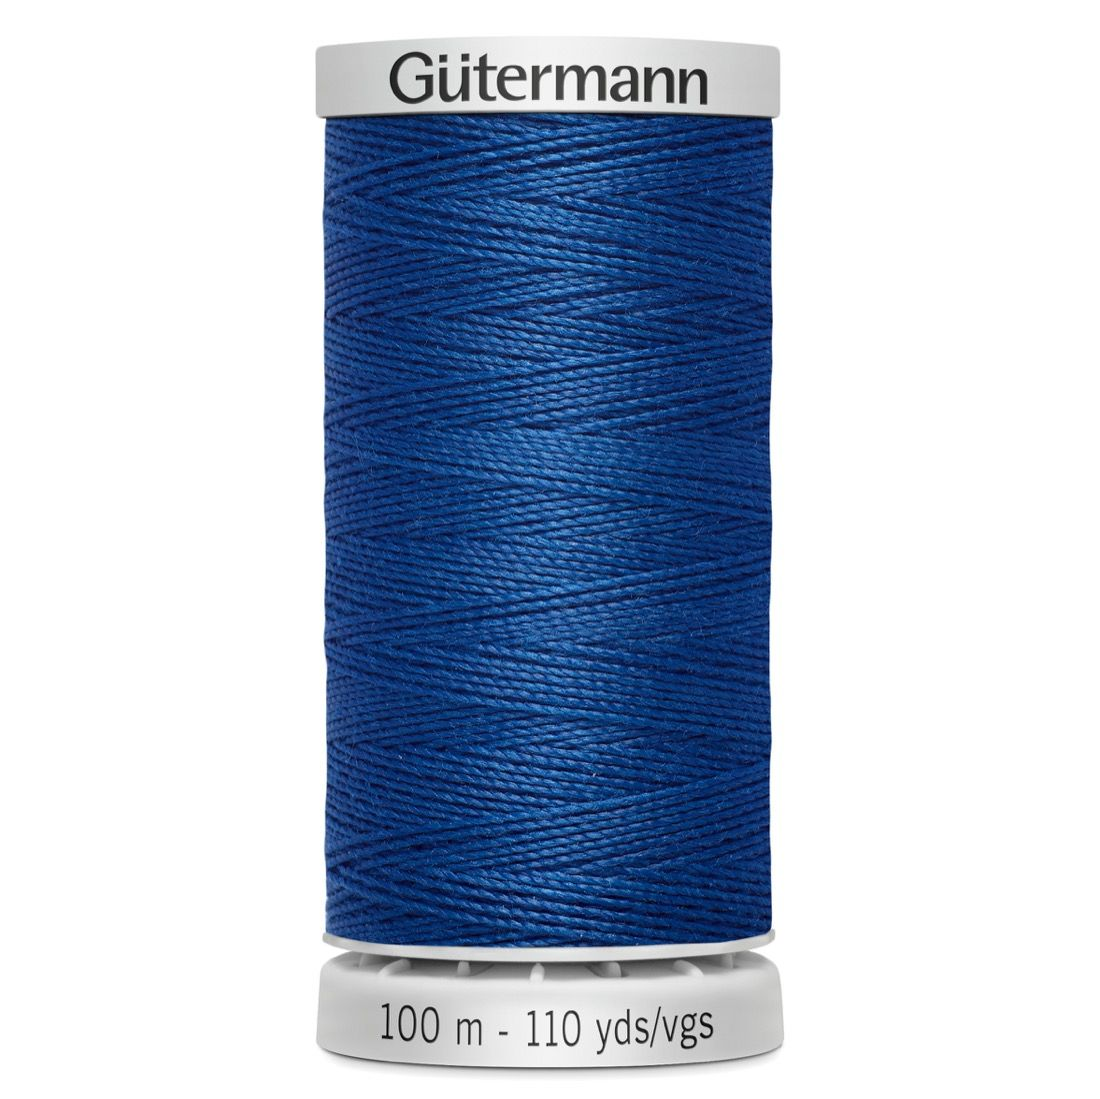 Gutermann Extra Strong Upholstery Thread - 100m - 214